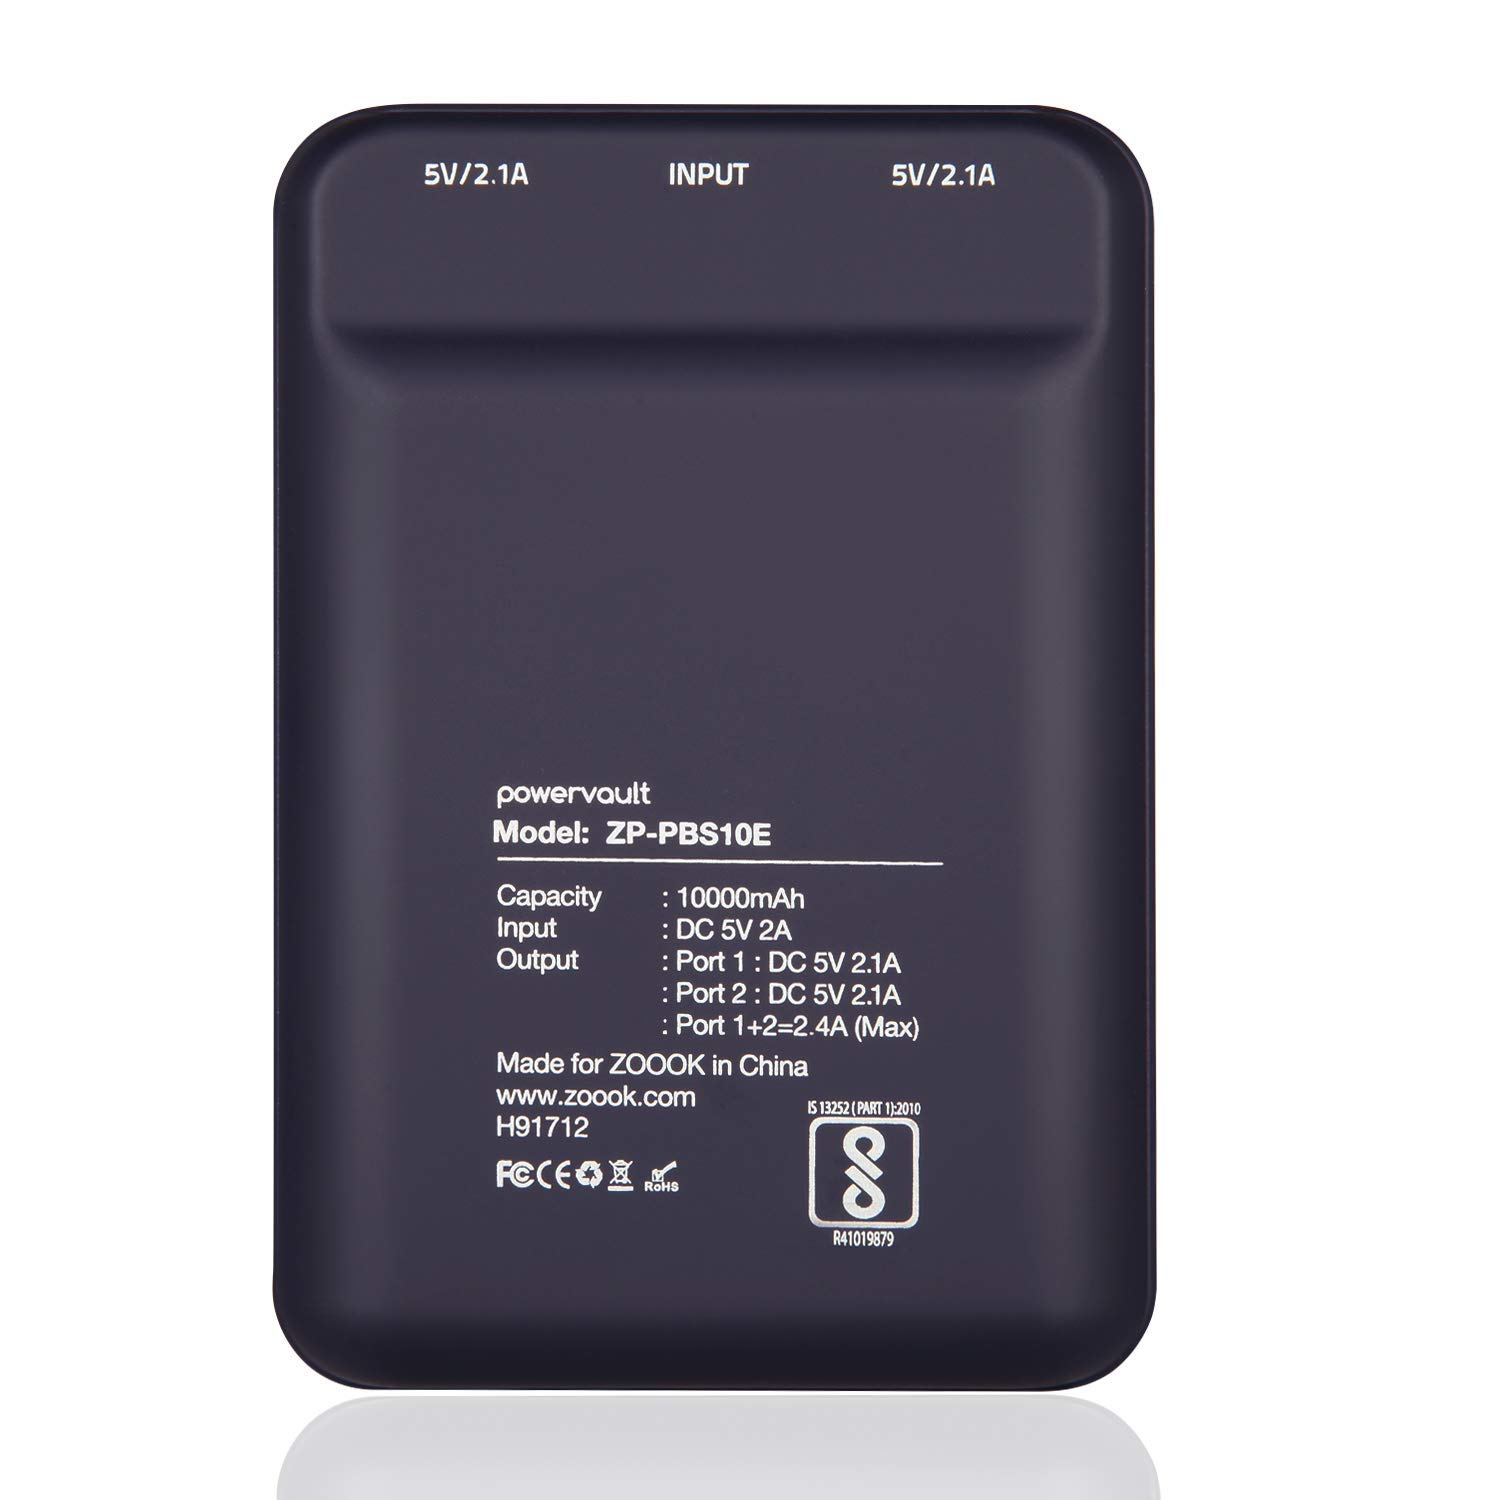 Zoook PBS10E 10000mAH Lithium-Polymer Dual Output World's Smallest Power Bank (Black)